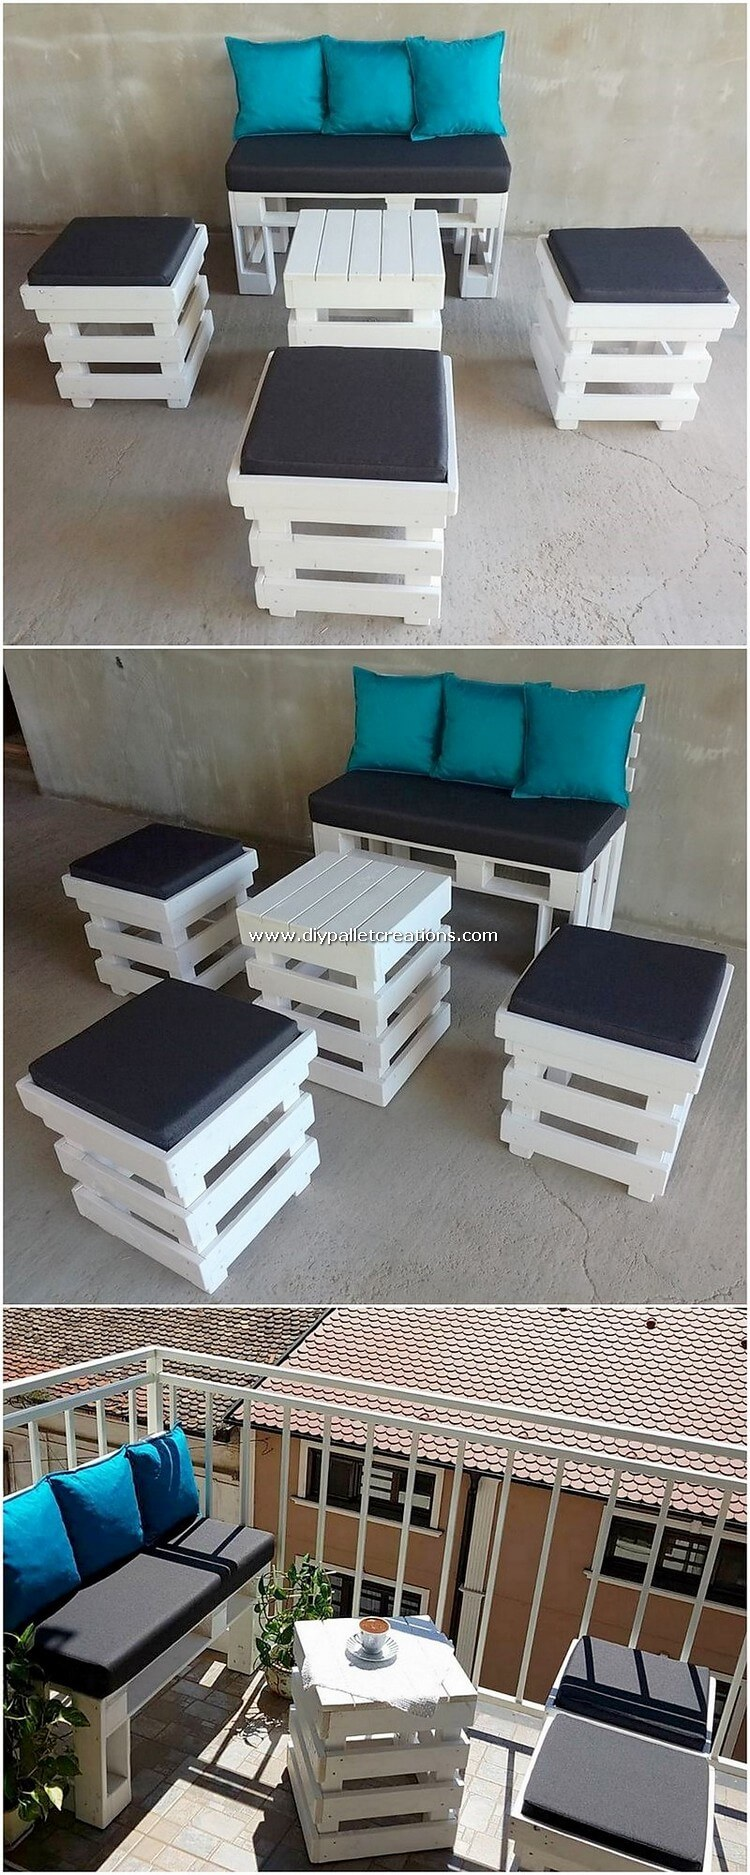 Pallet Bench Table and Stools